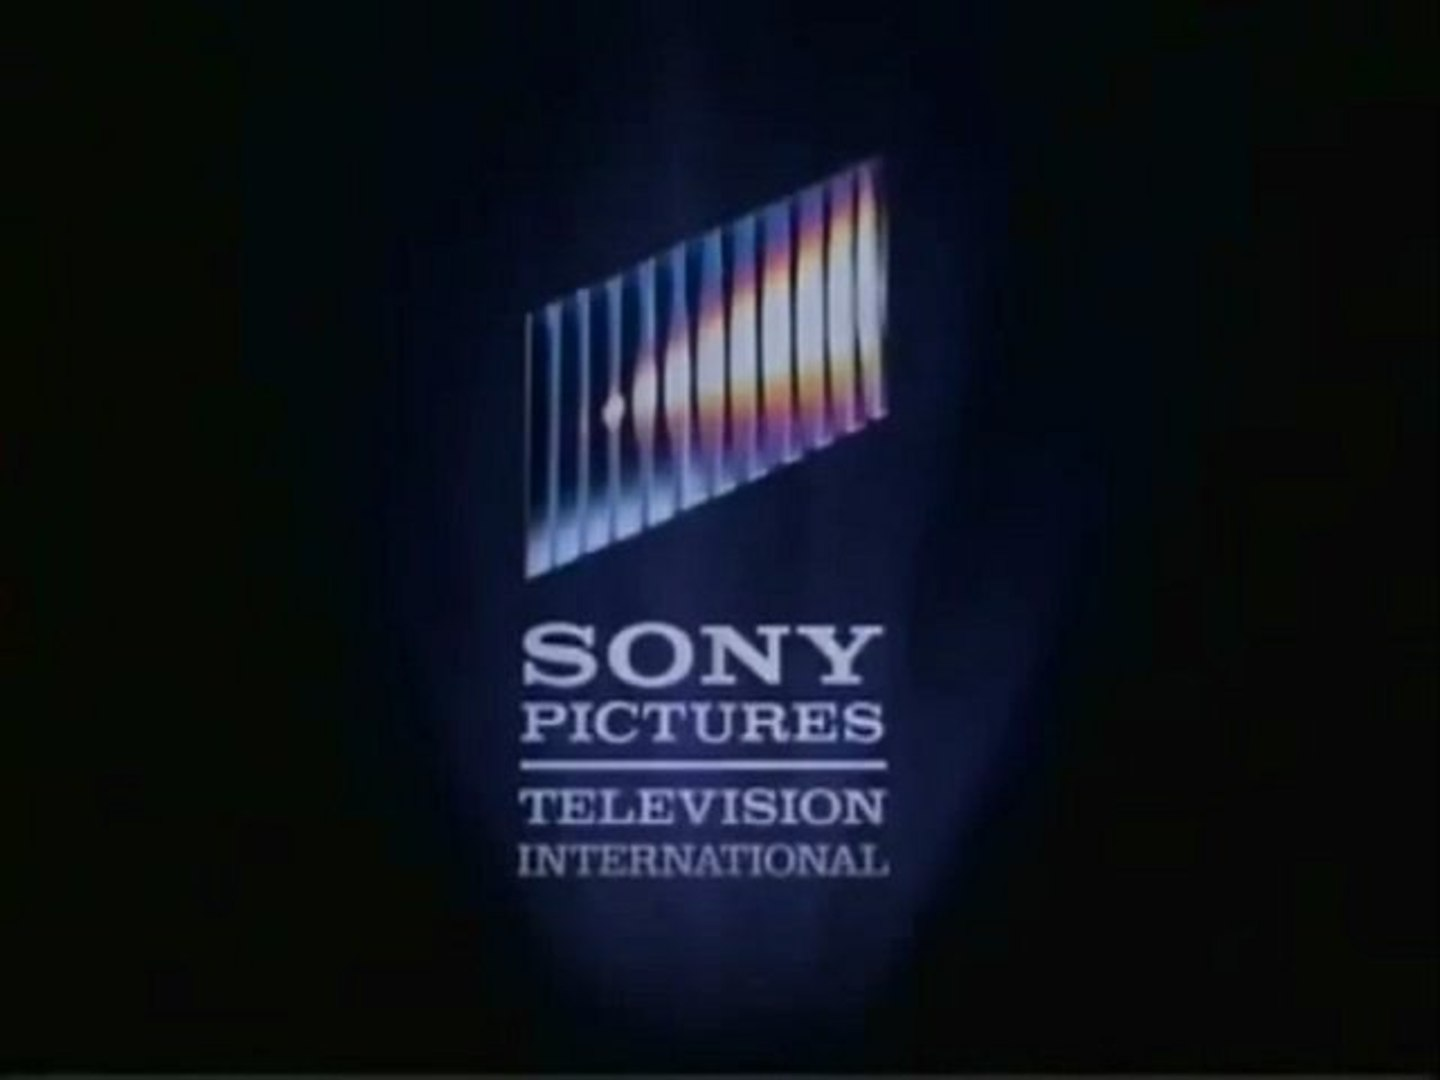 Messing around with logos Sony Pictures Television International Part 1.